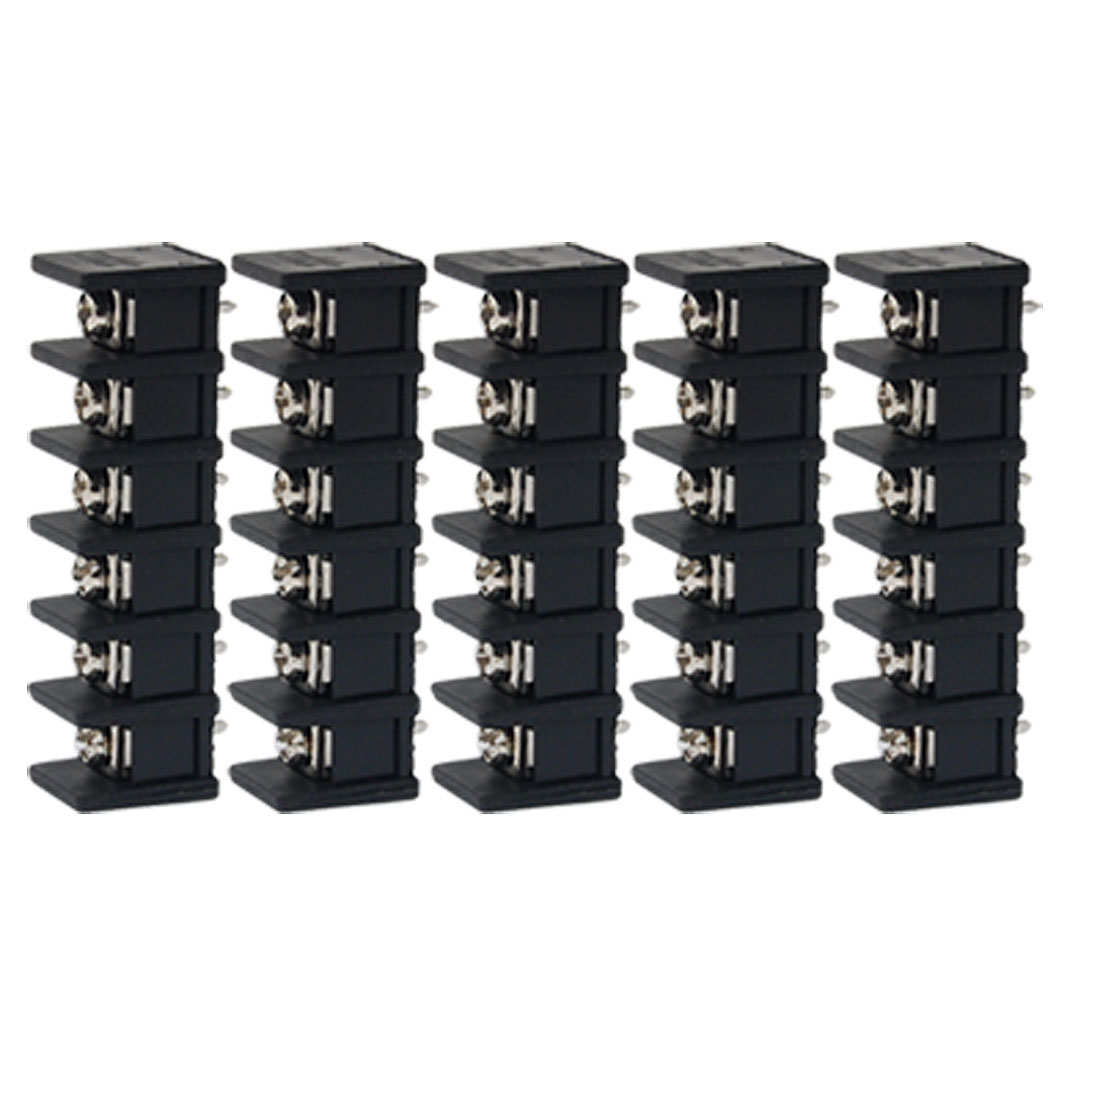 5 Pcs 6P 8.5mm Pitch Screw Terminal Block Connector 300V 20A